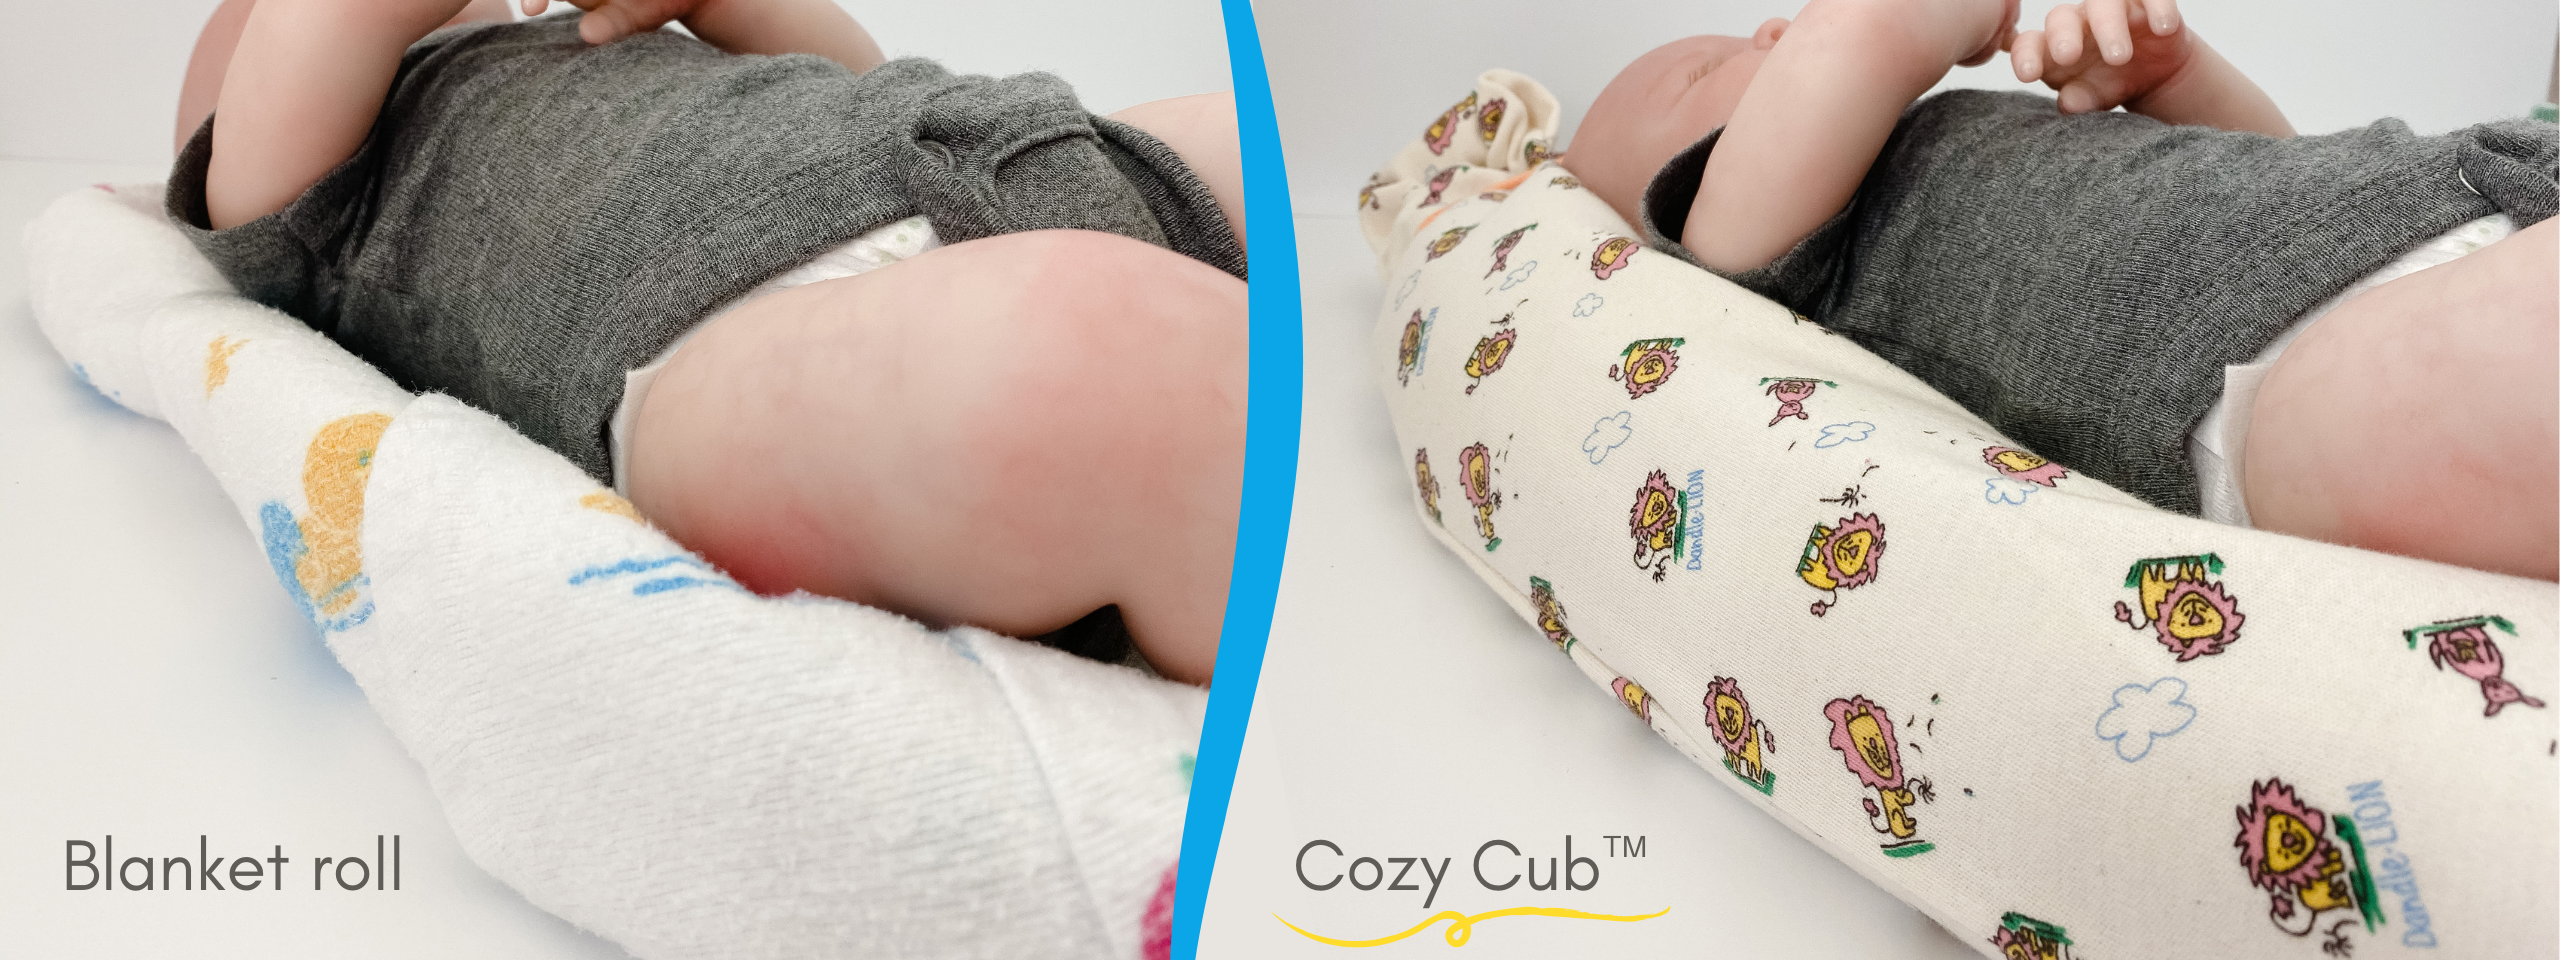 cozy cub vs blanket roll